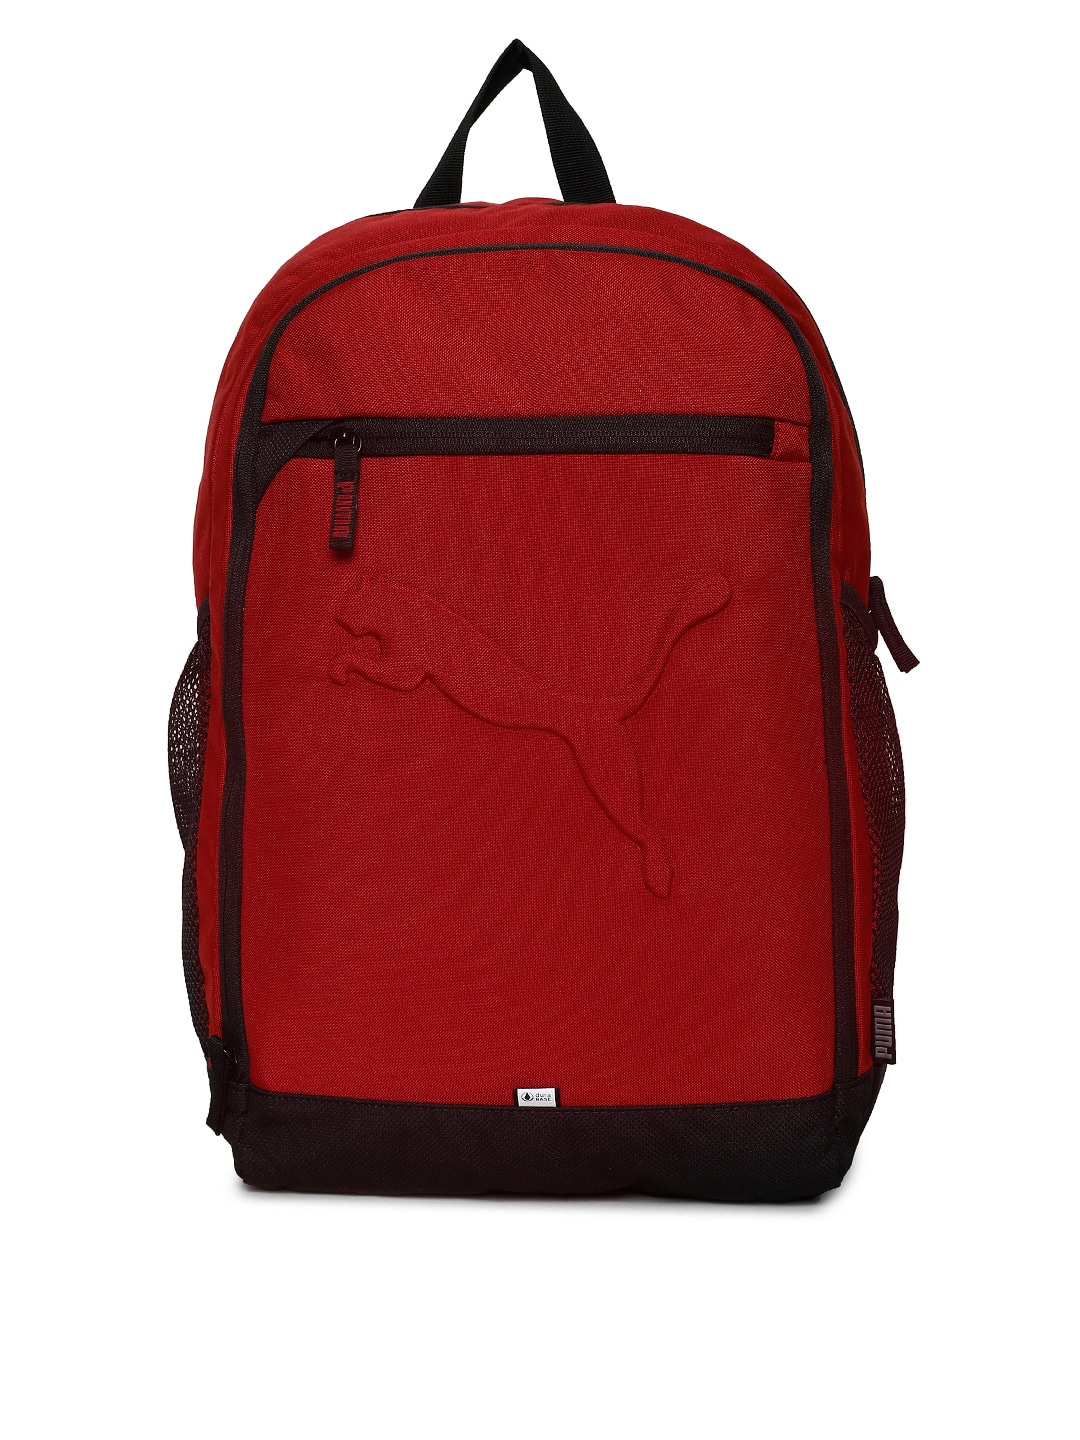 a1edf5282cab Red Puma Ferrari Backpacks - Buy Red Puma Ferrari Backpacks online in India